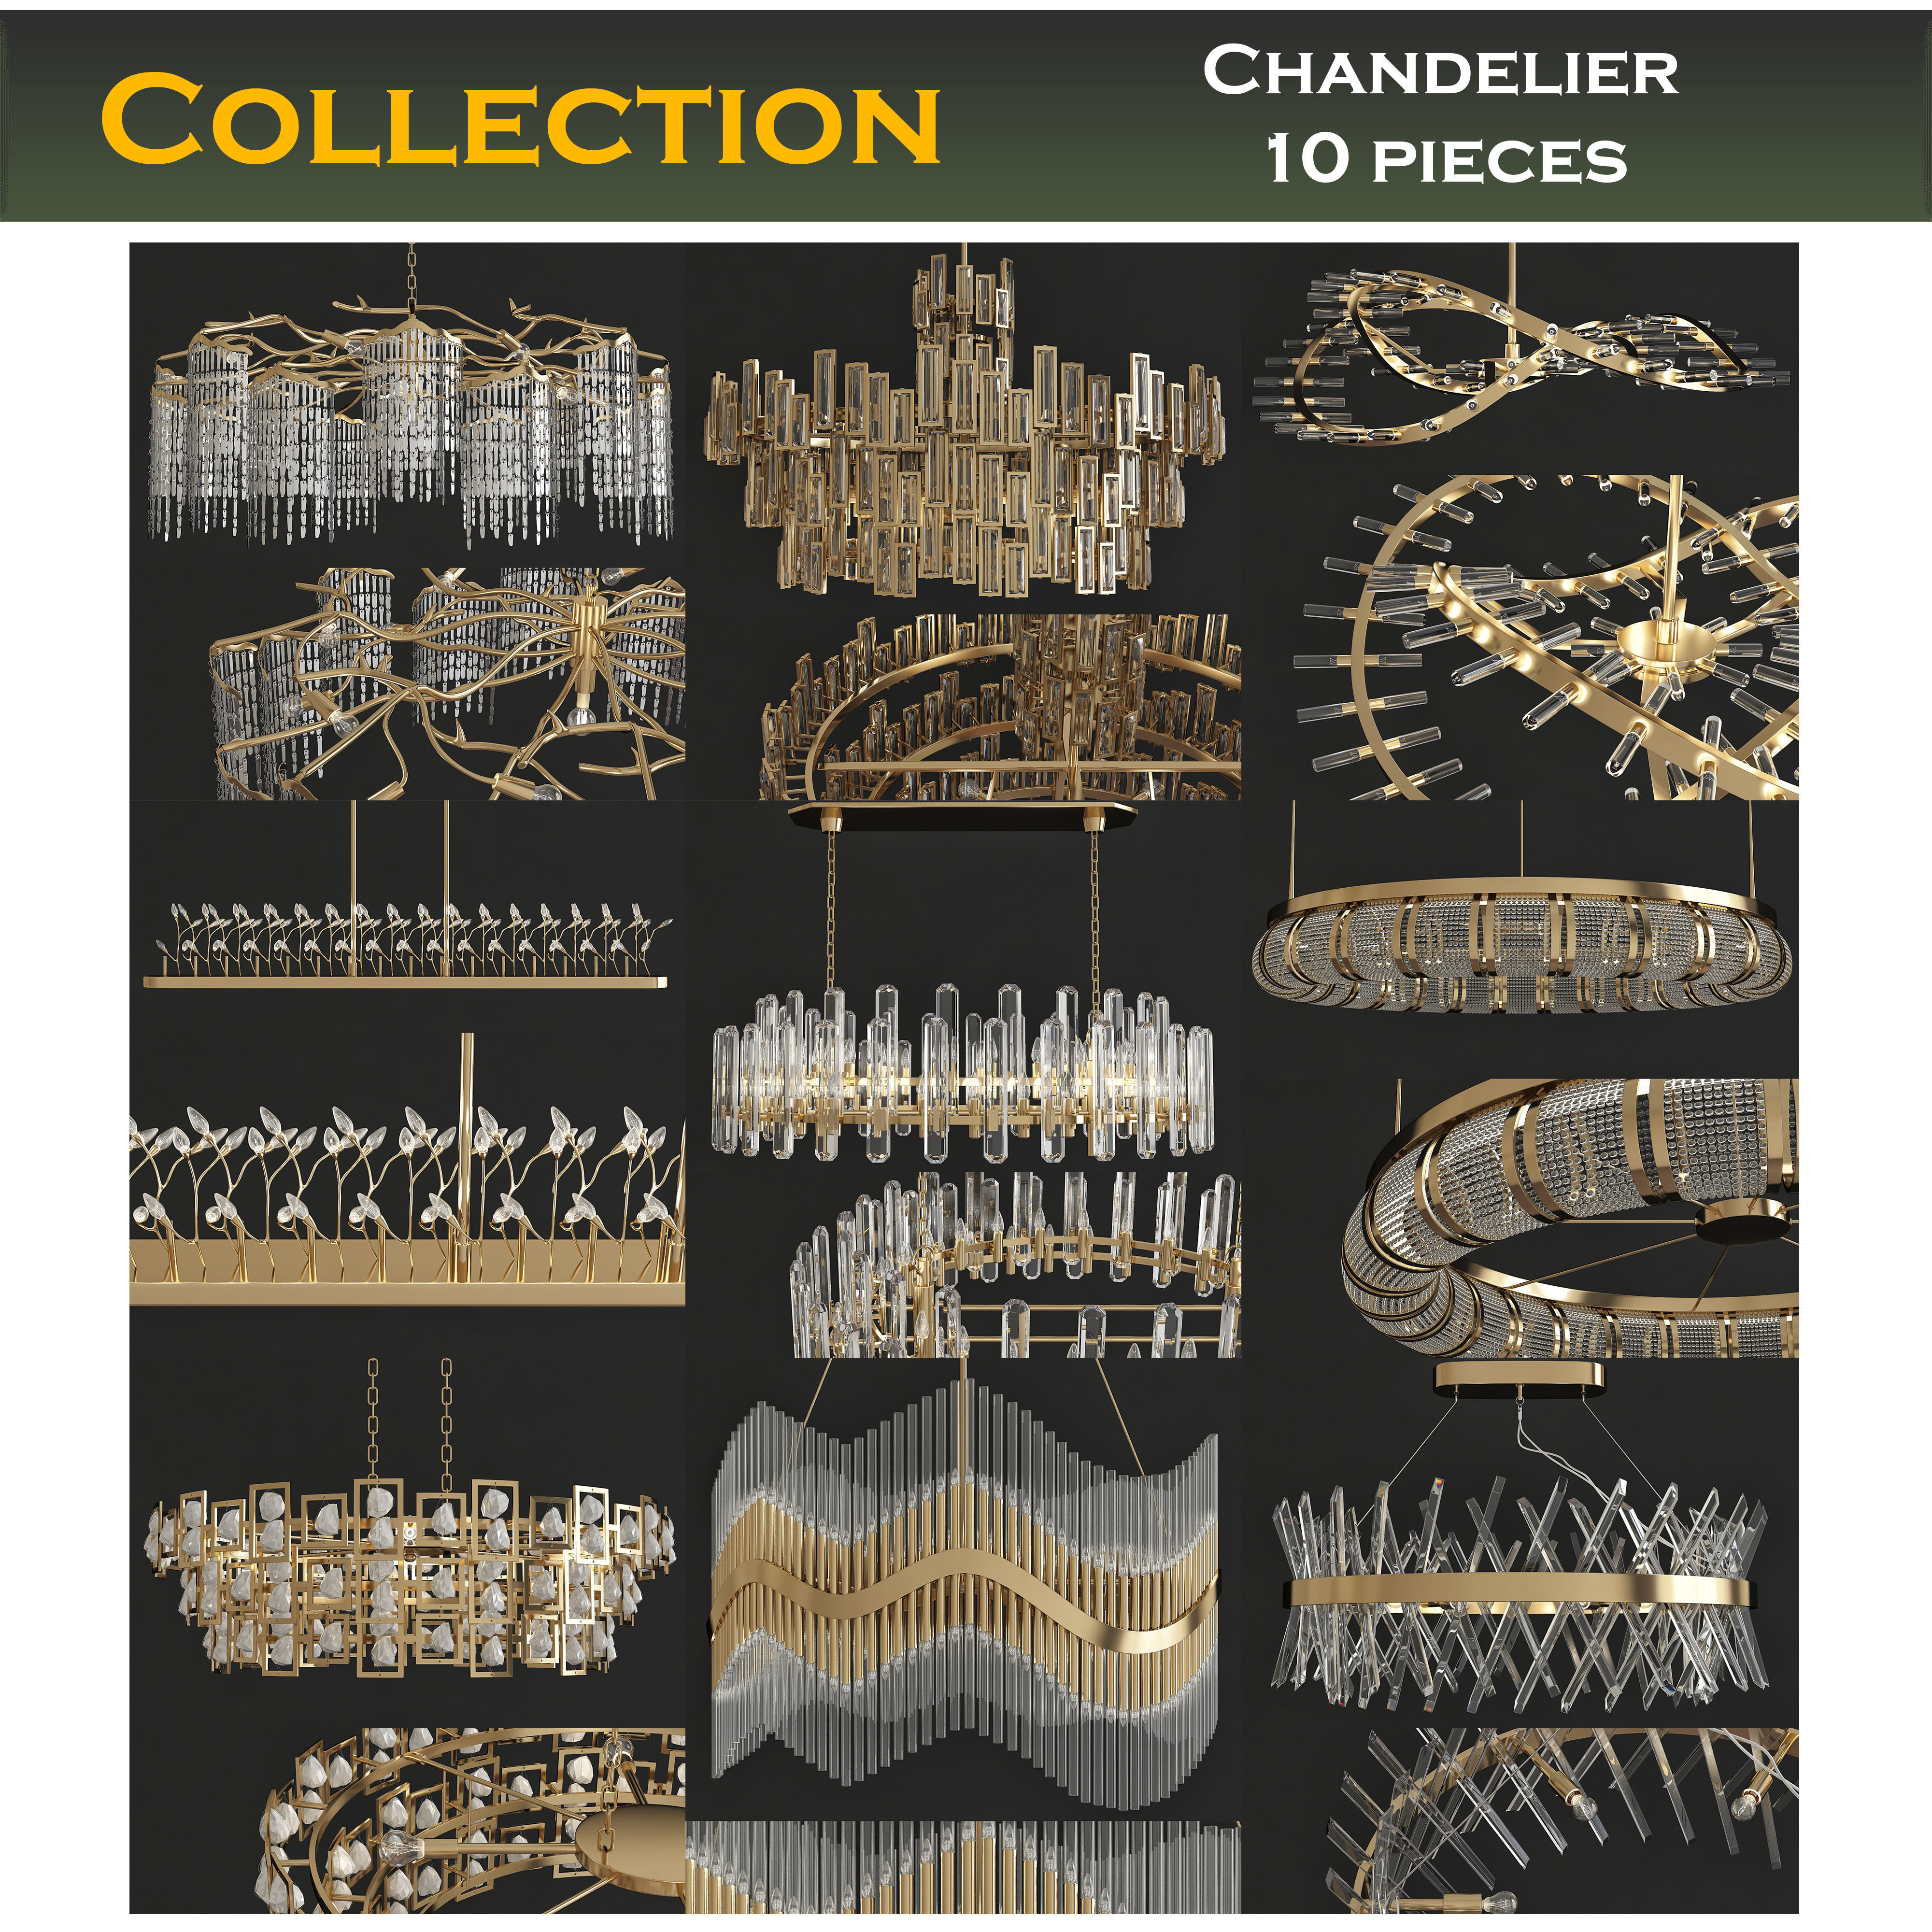 Chandeliers 3d models Collection 10 models